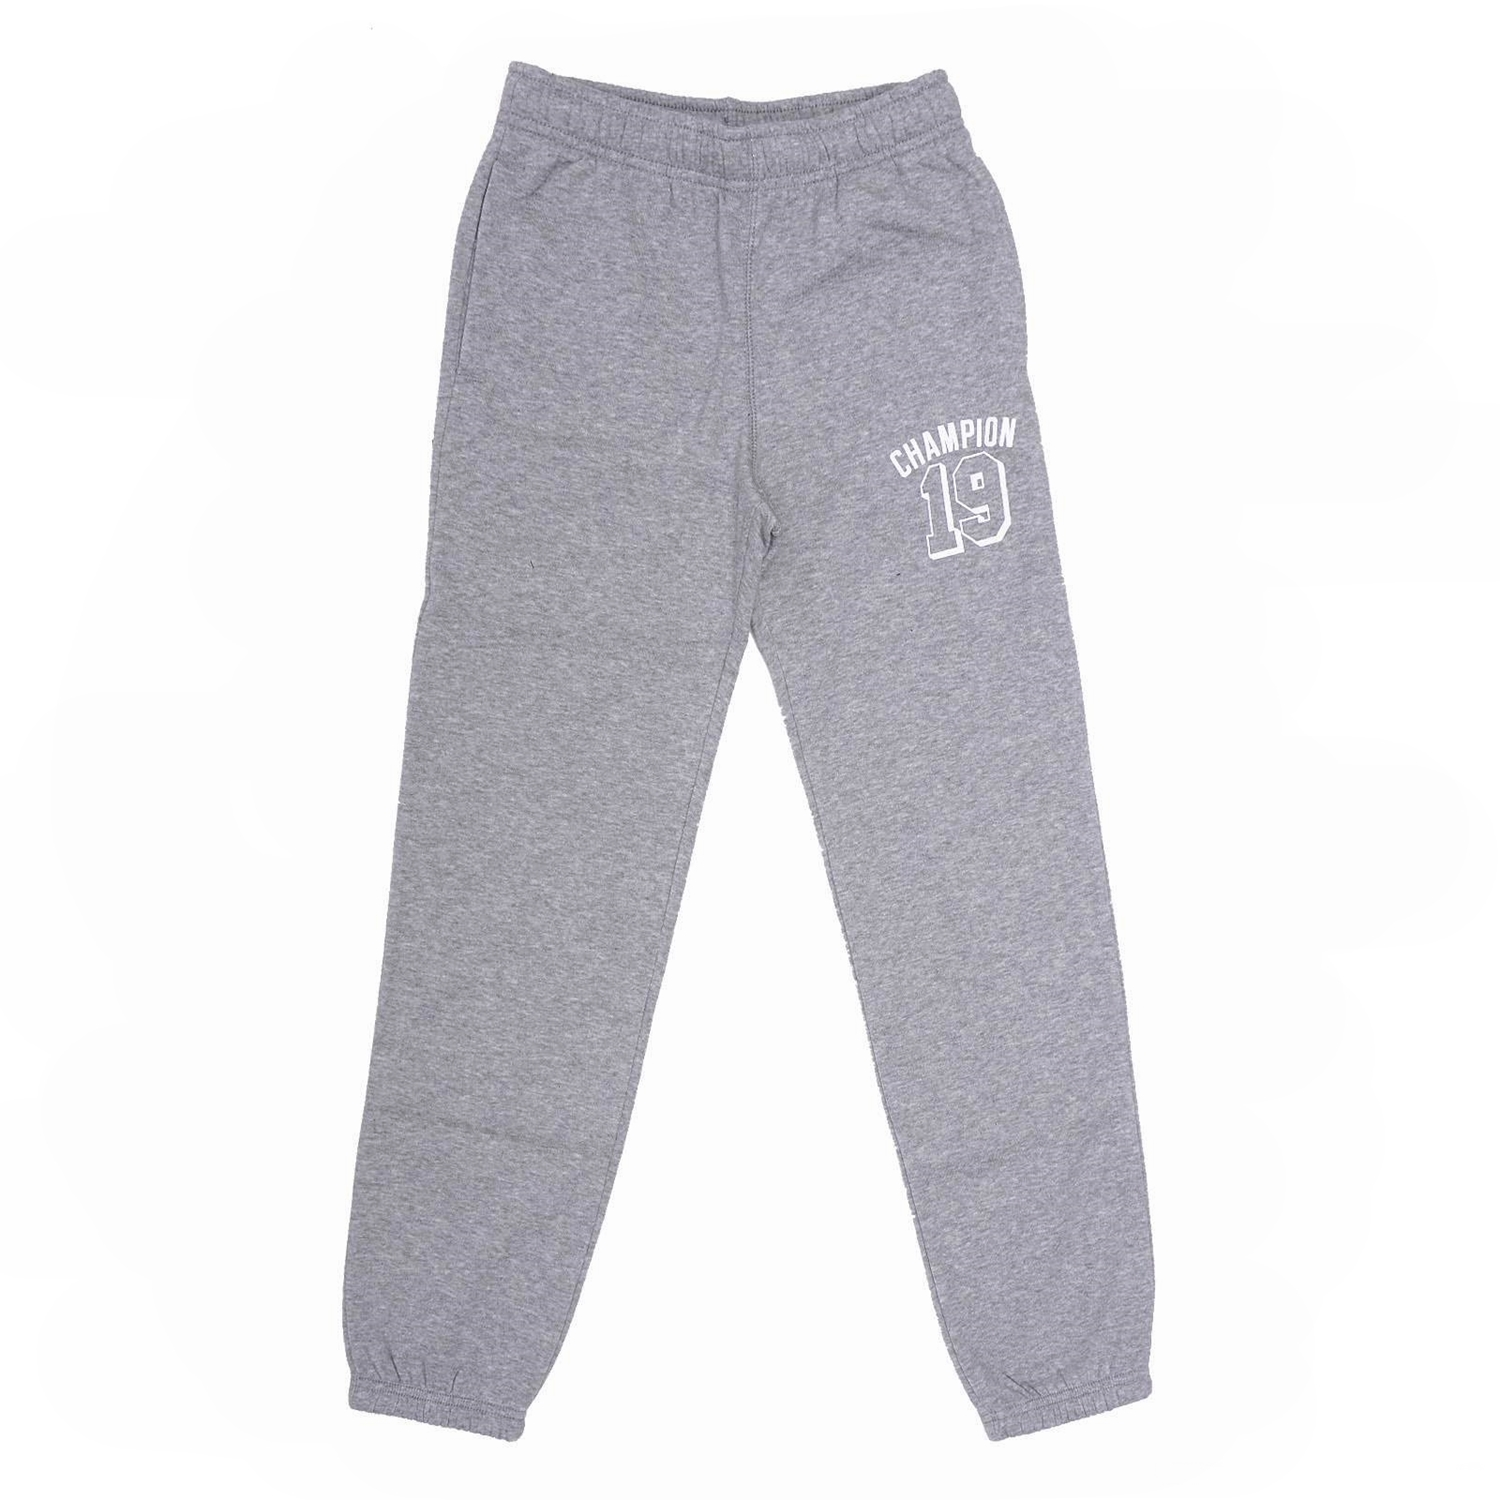 Pantalón Cuff 1919 grey Athletic Niño Champion Logo 6Rdqd